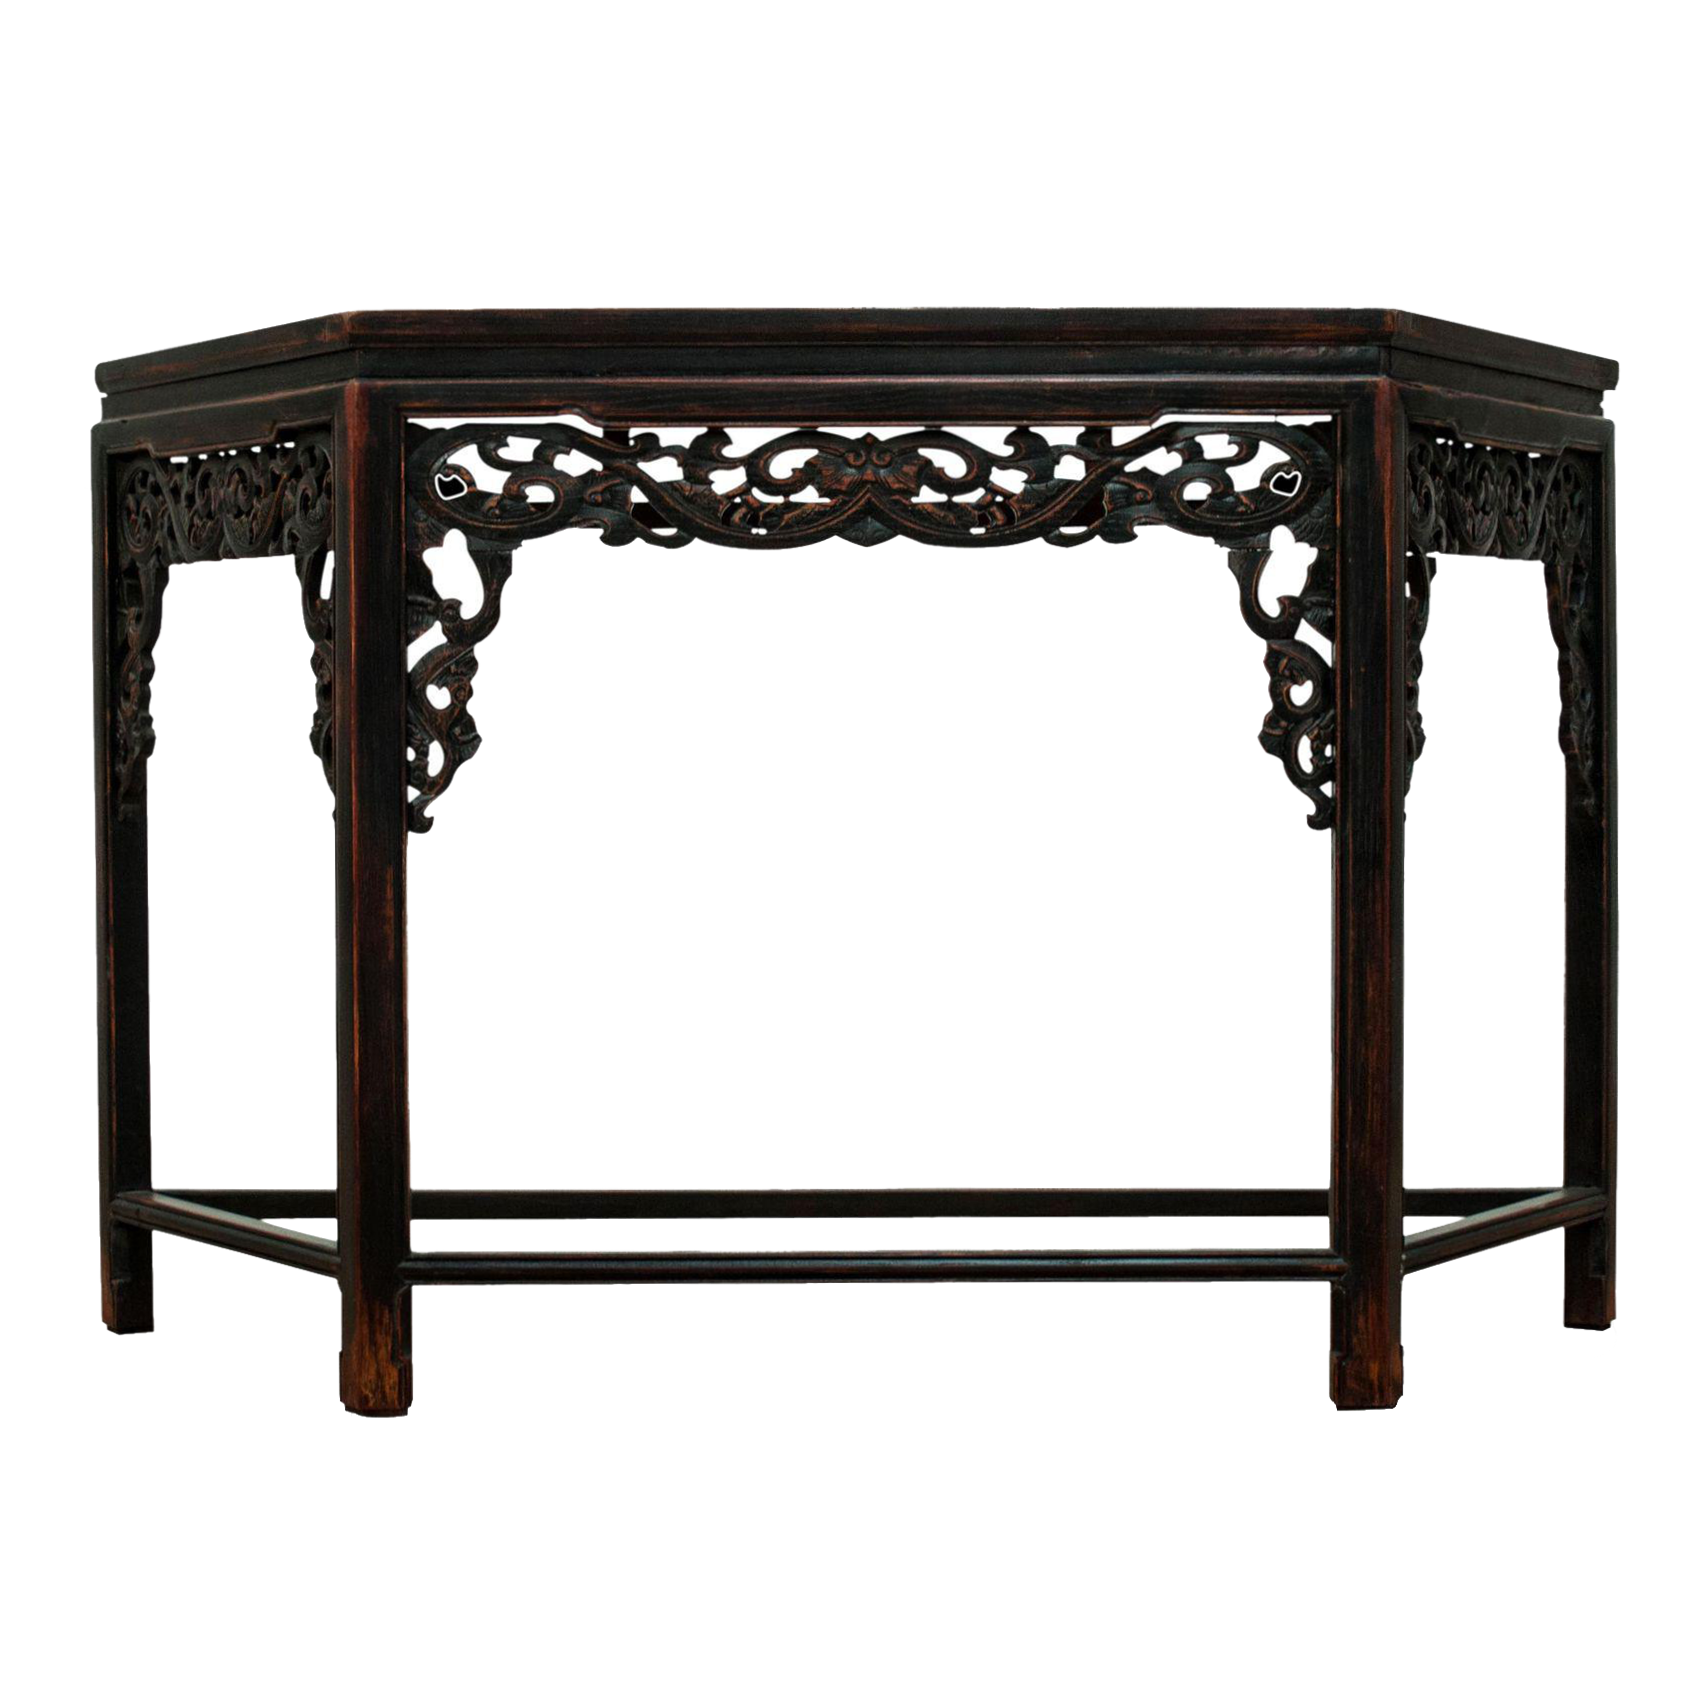 Sarreid ltd asian carved wood console table chairish geotapseo Gallery